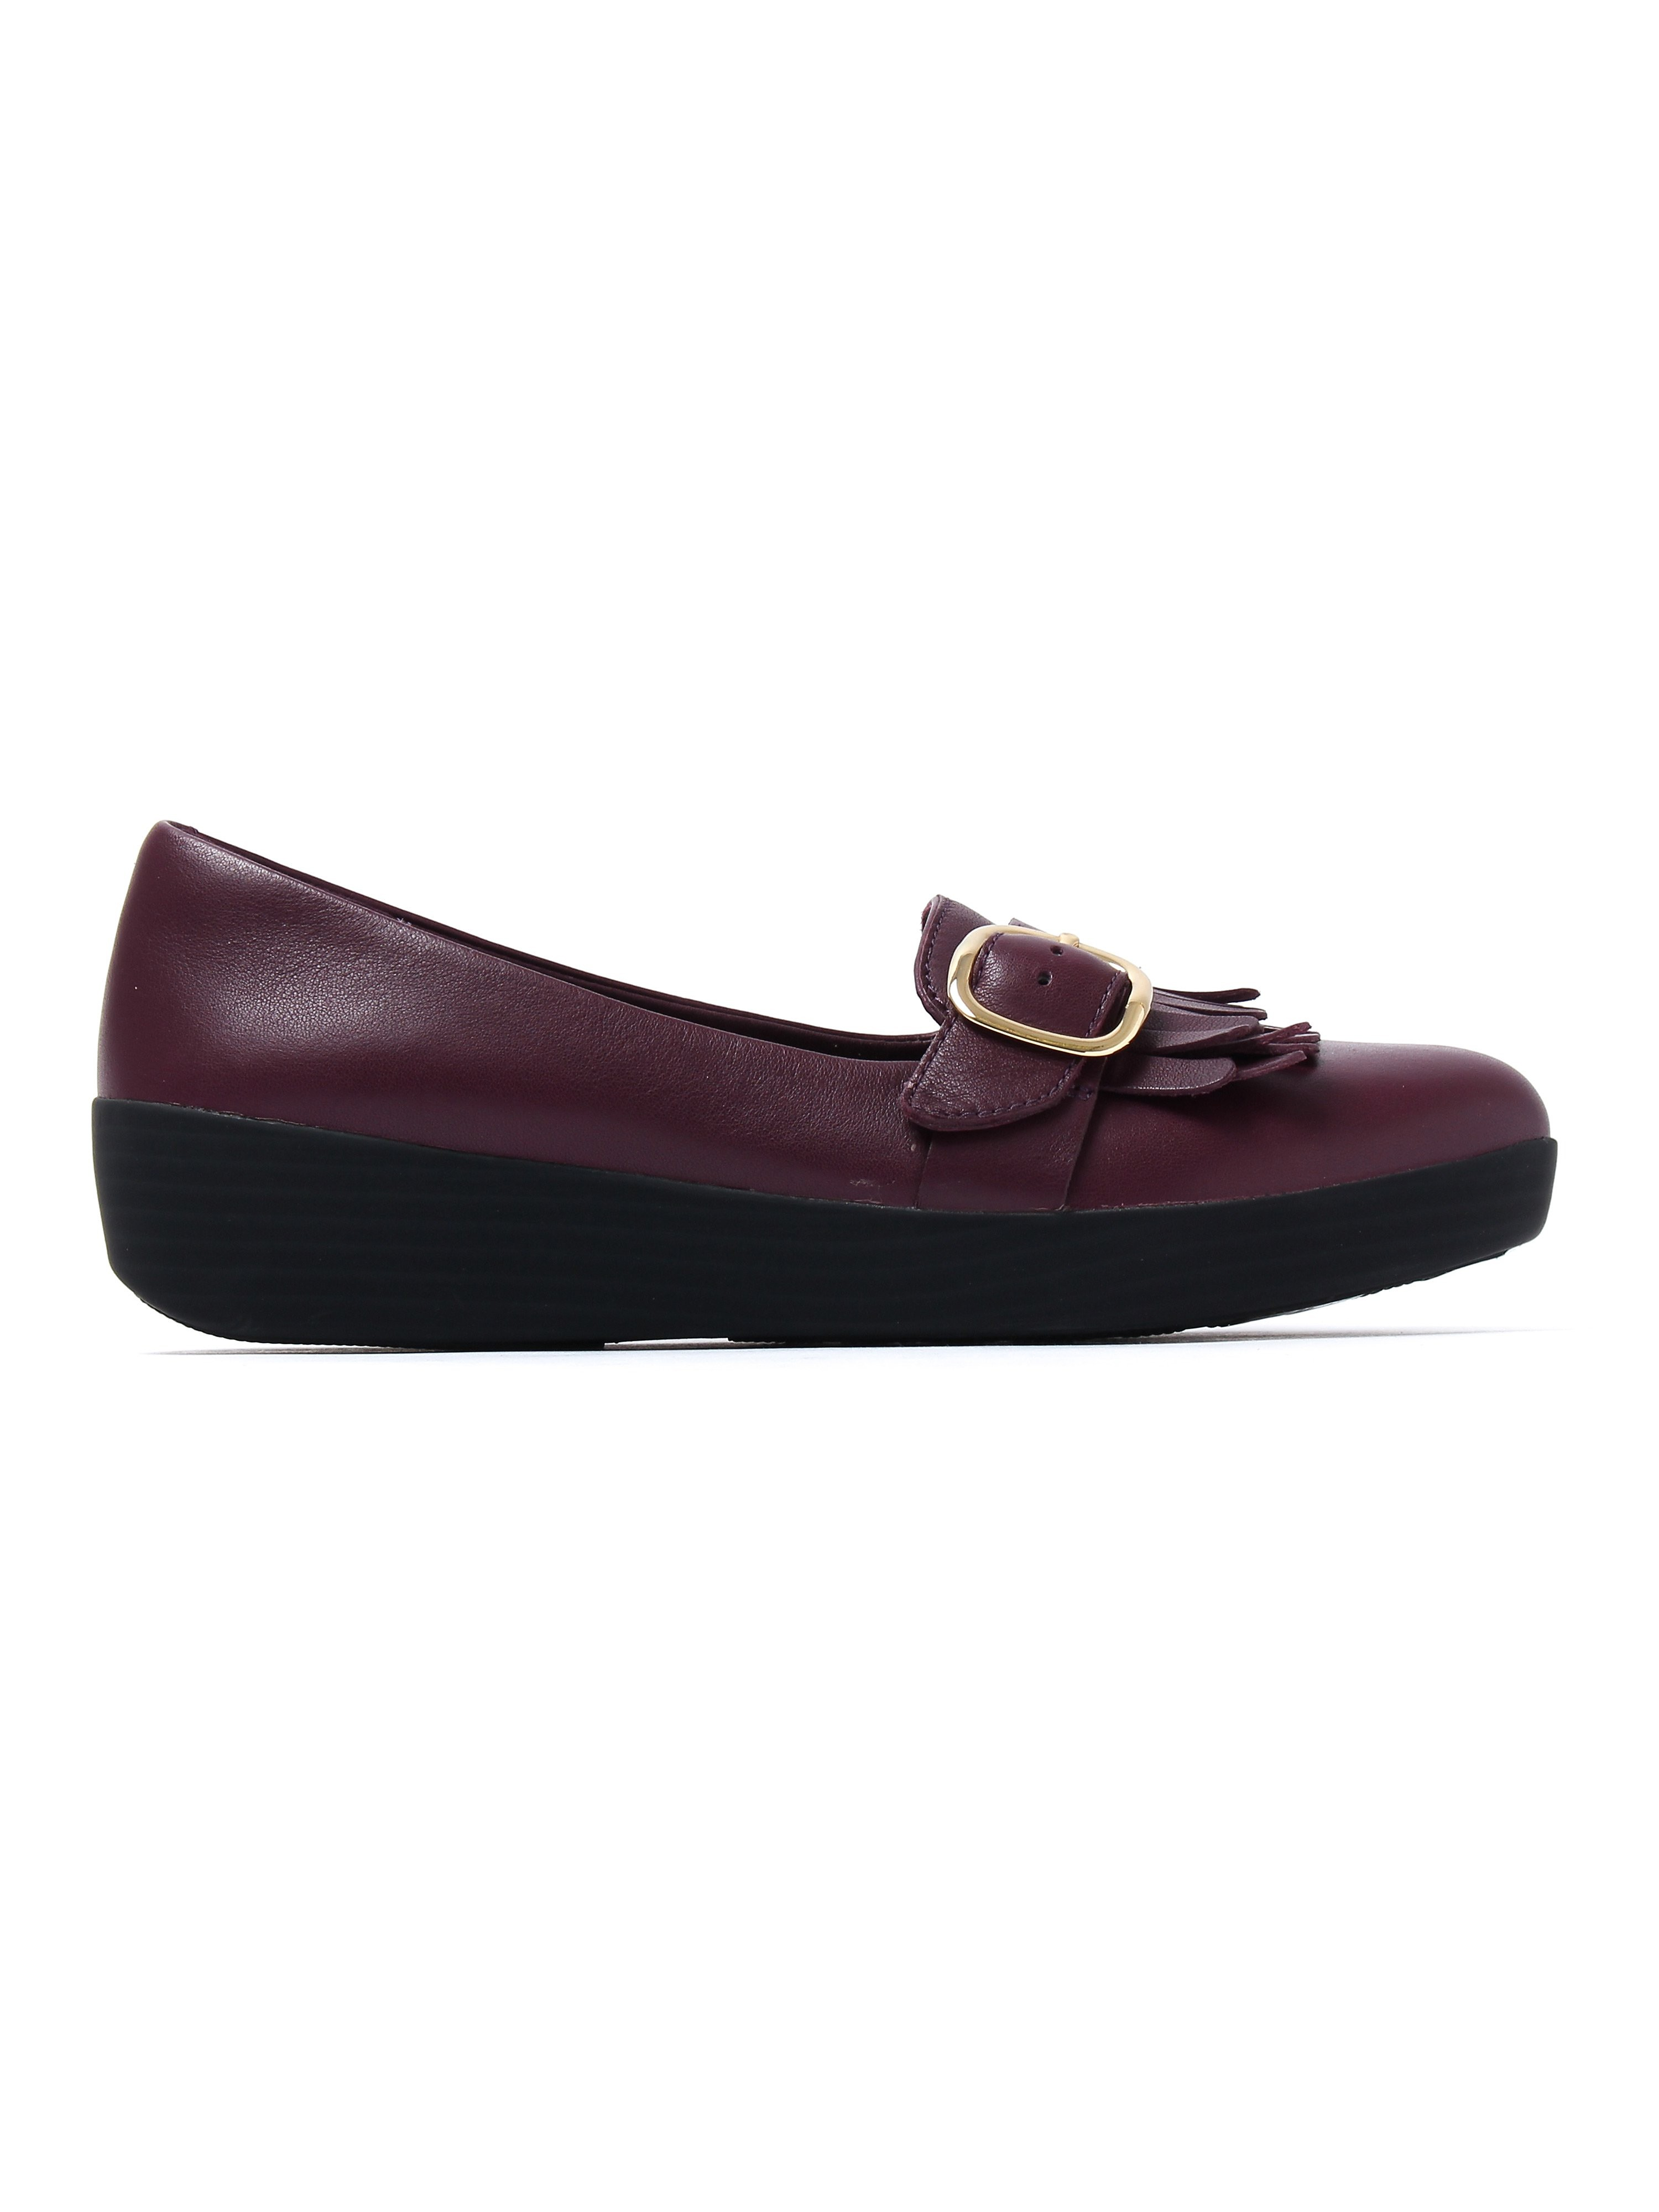 FitFlop Women's Buckle Sneakerloafers - Deep Plum